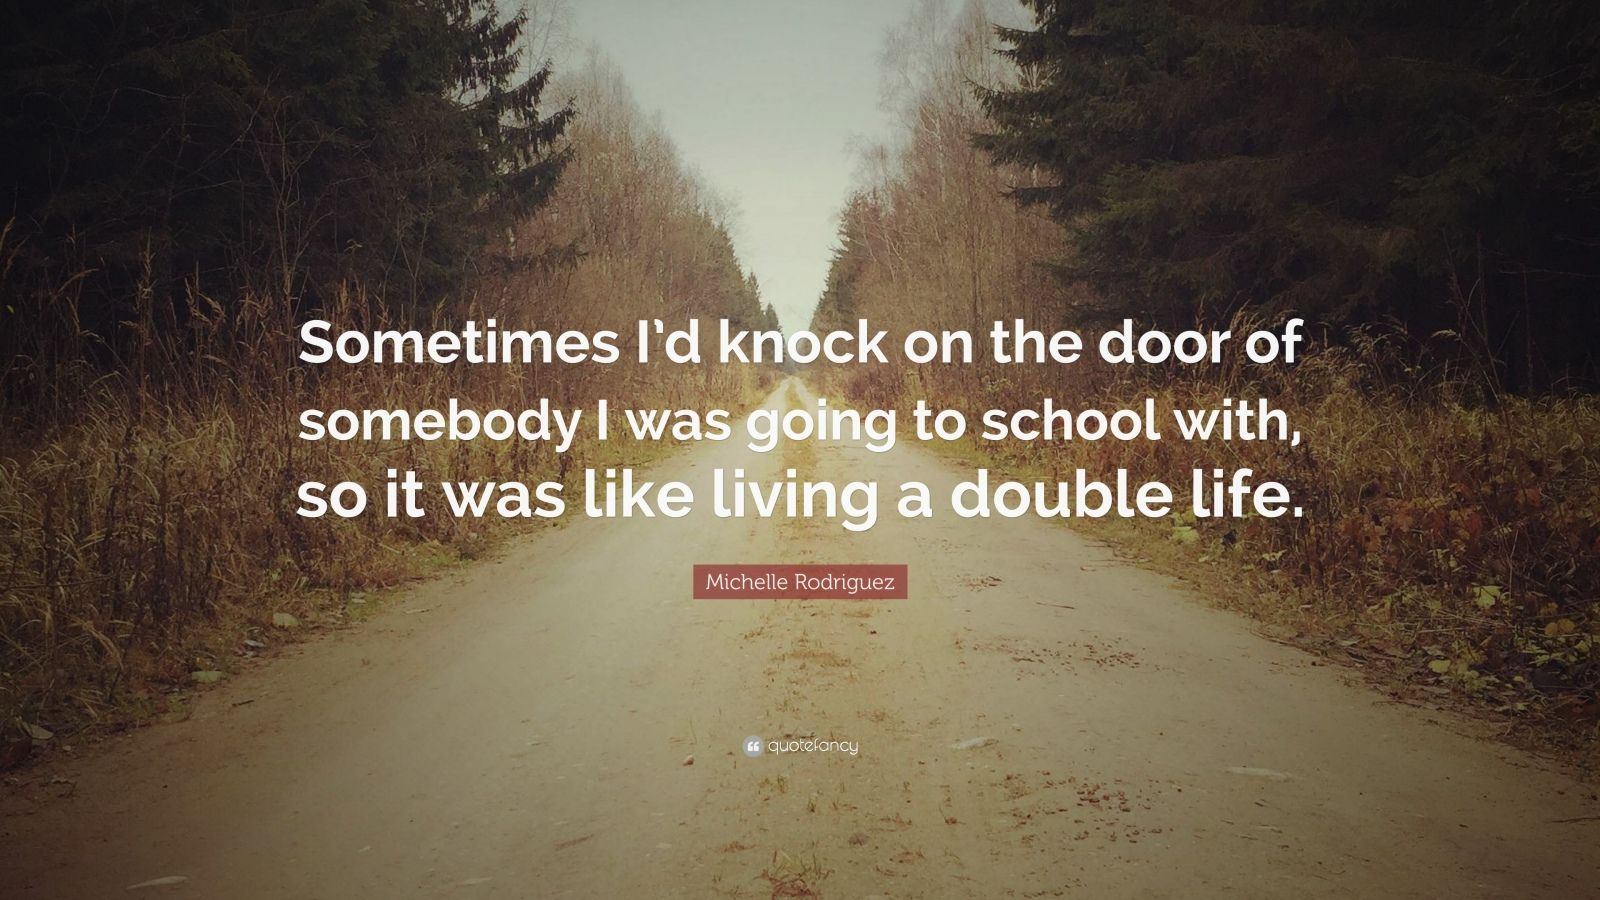 Michelle Rodriguez Quote: U201cSometimes Iu0027d Knock On The Door Of Somebody I